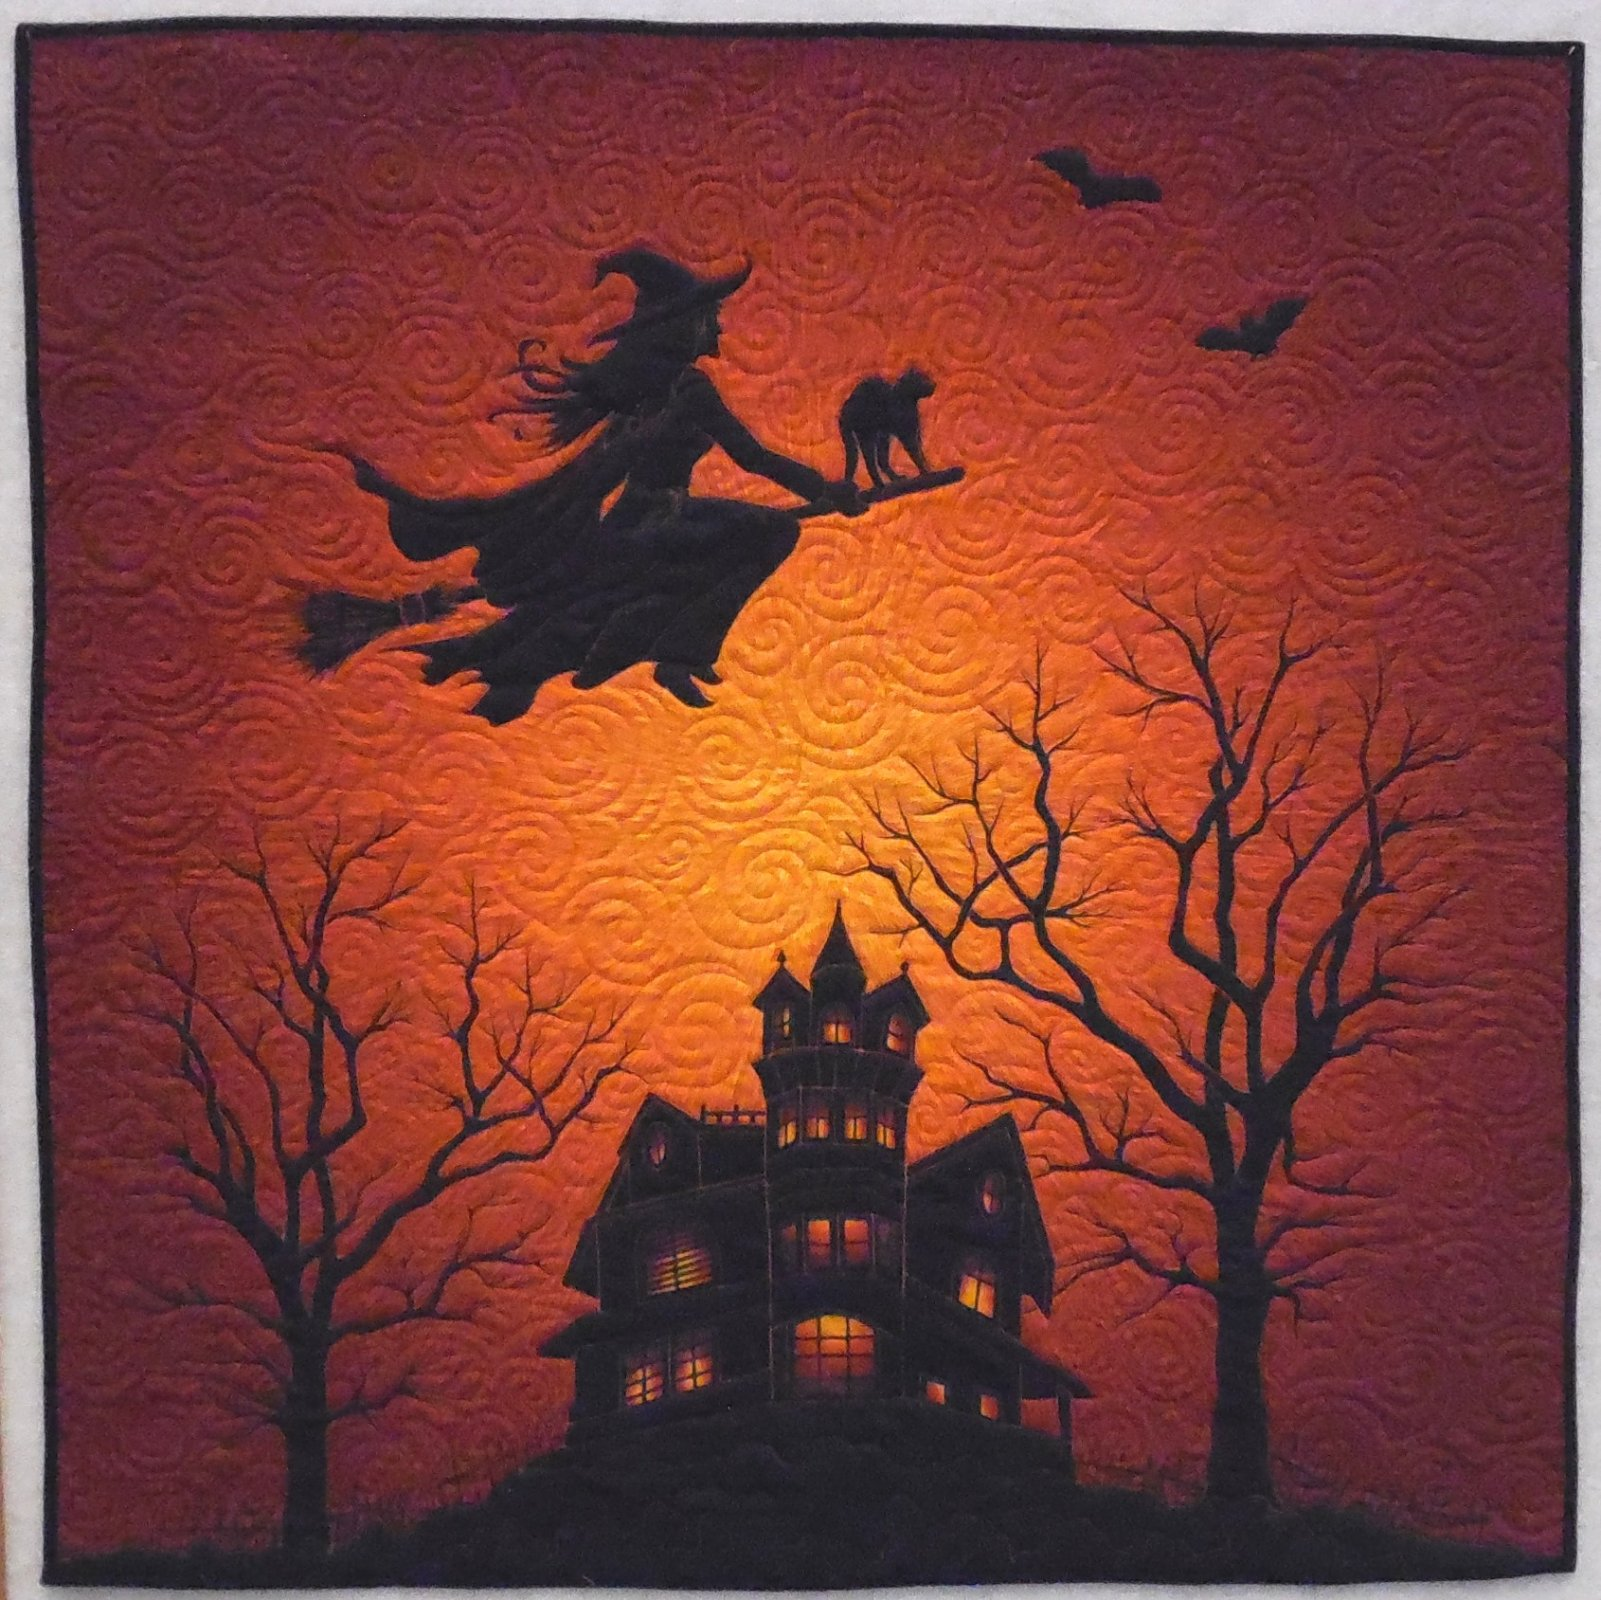 Flying Witch - Finished Halloween Quilt 43 1/2 x 44